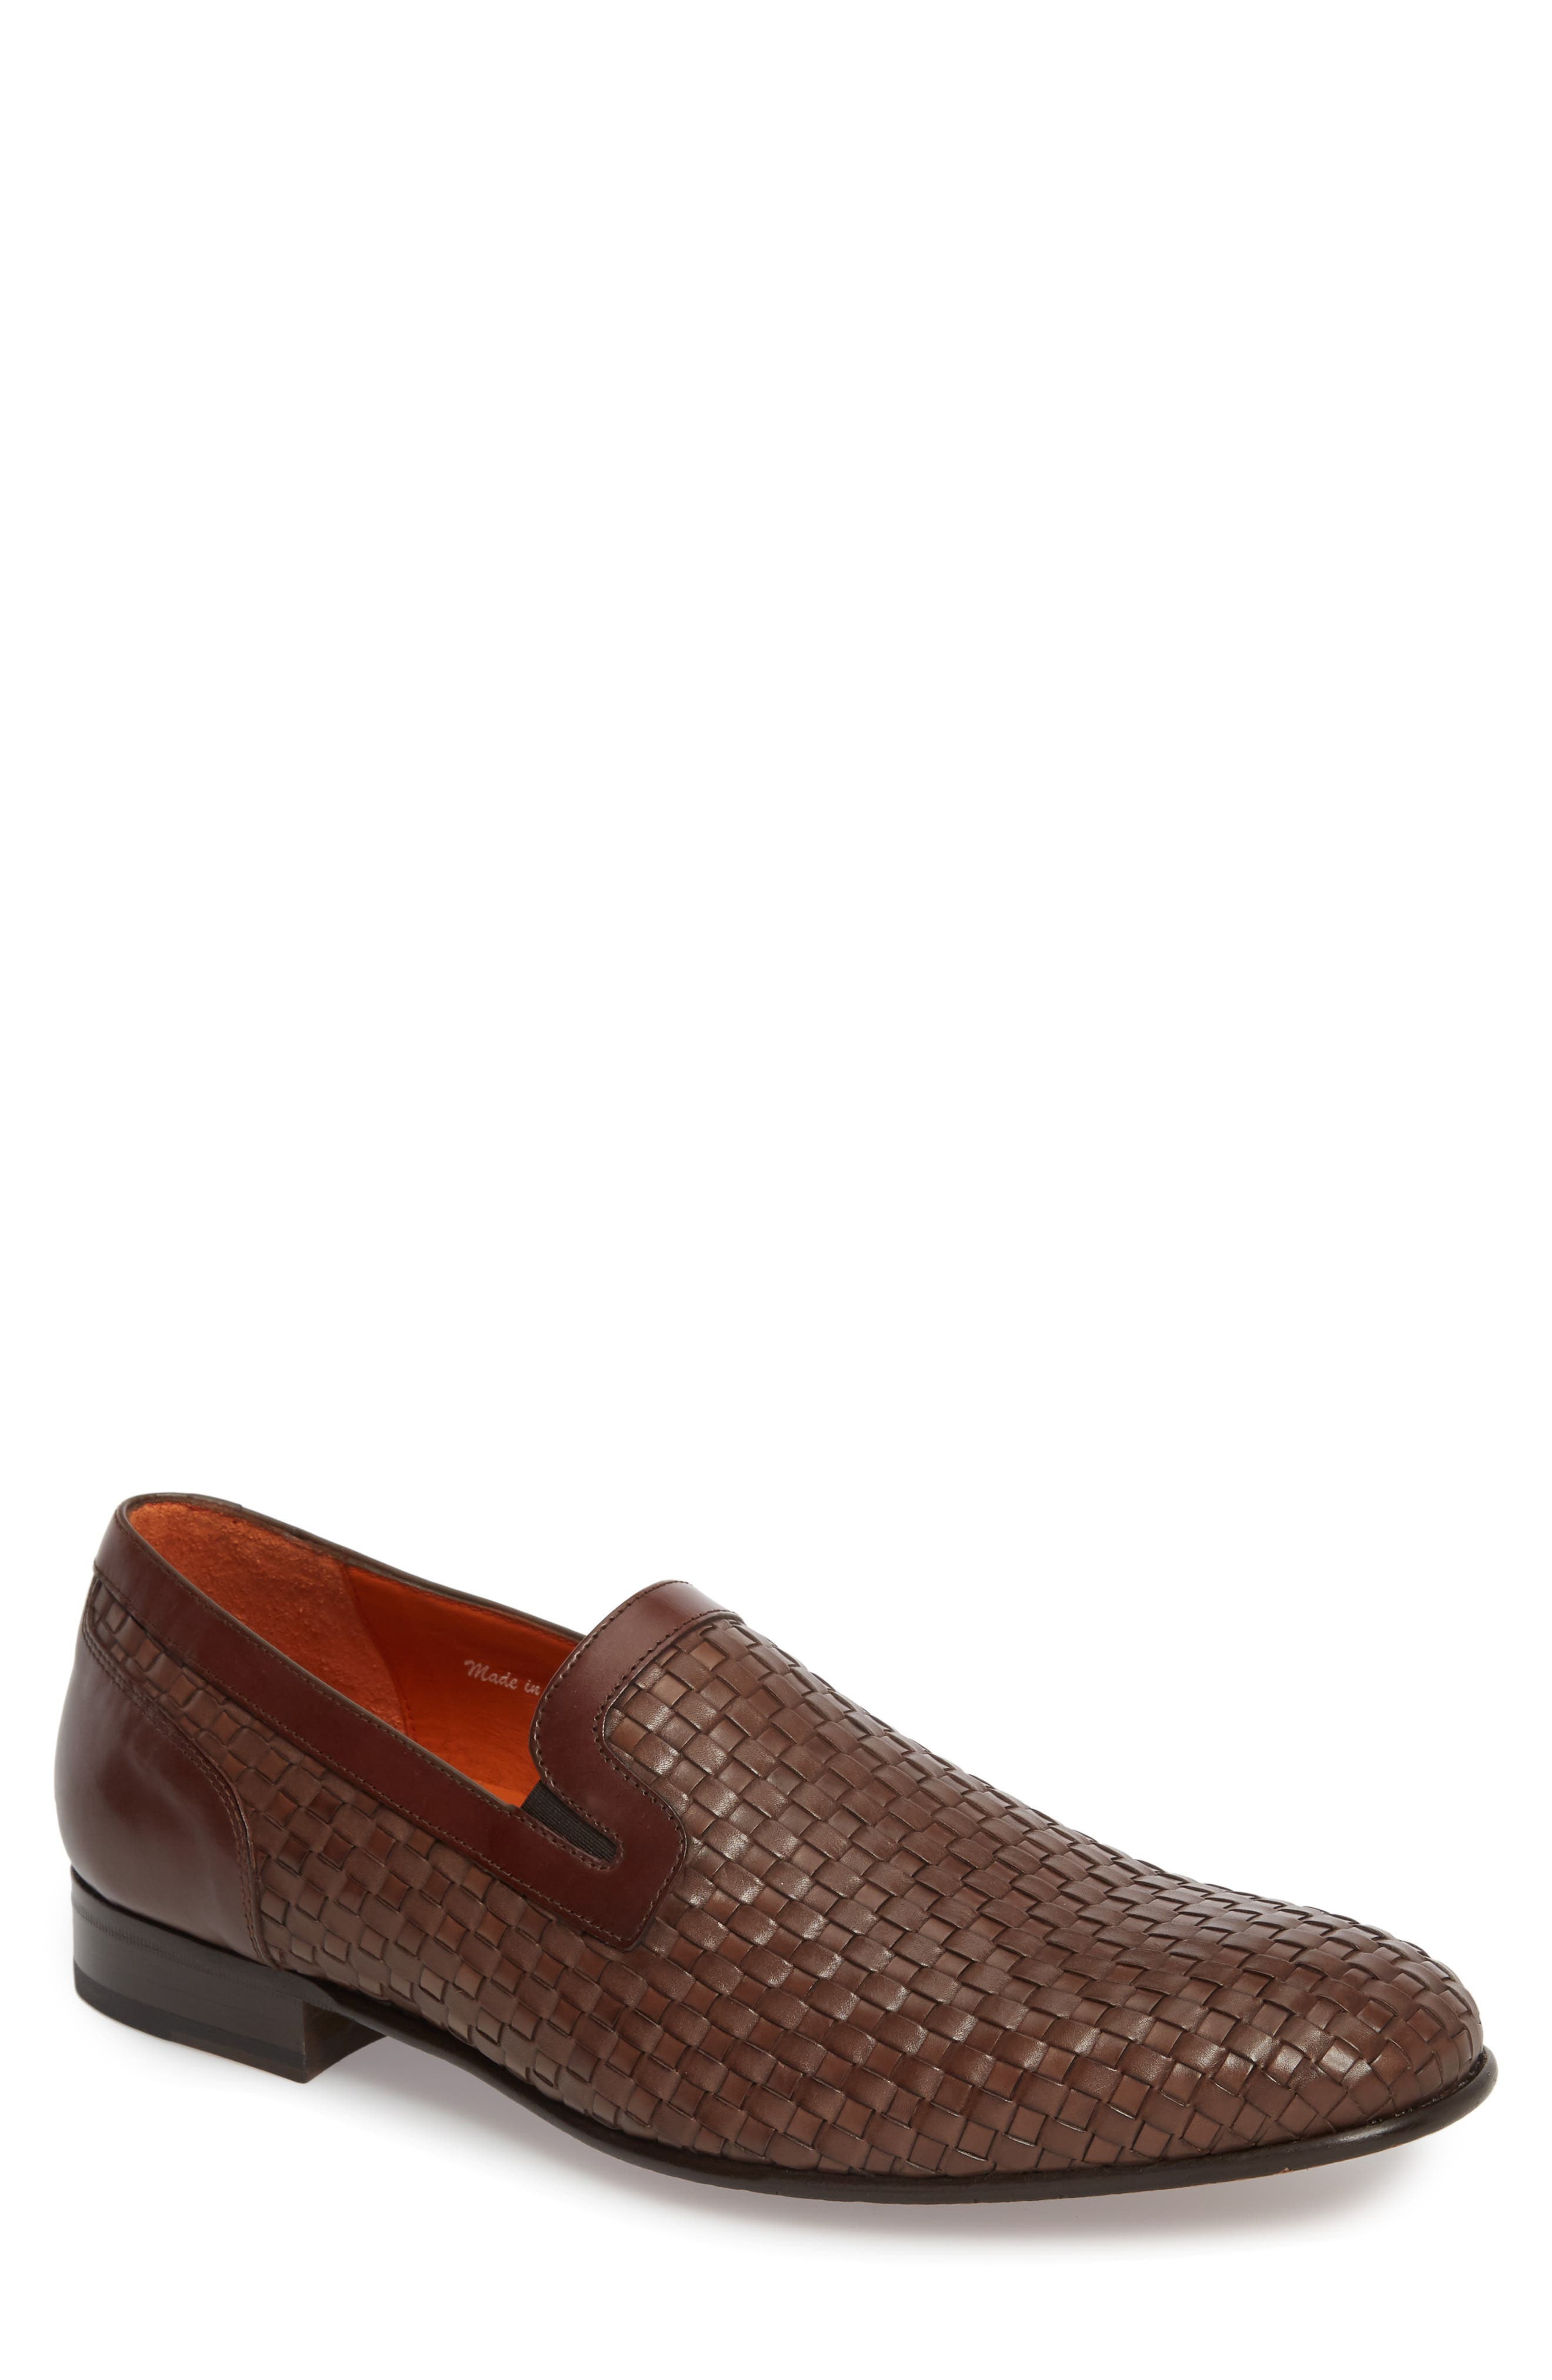 Eliseo Woven Venetian Loafer,                         Main,                         color, Brown Leather